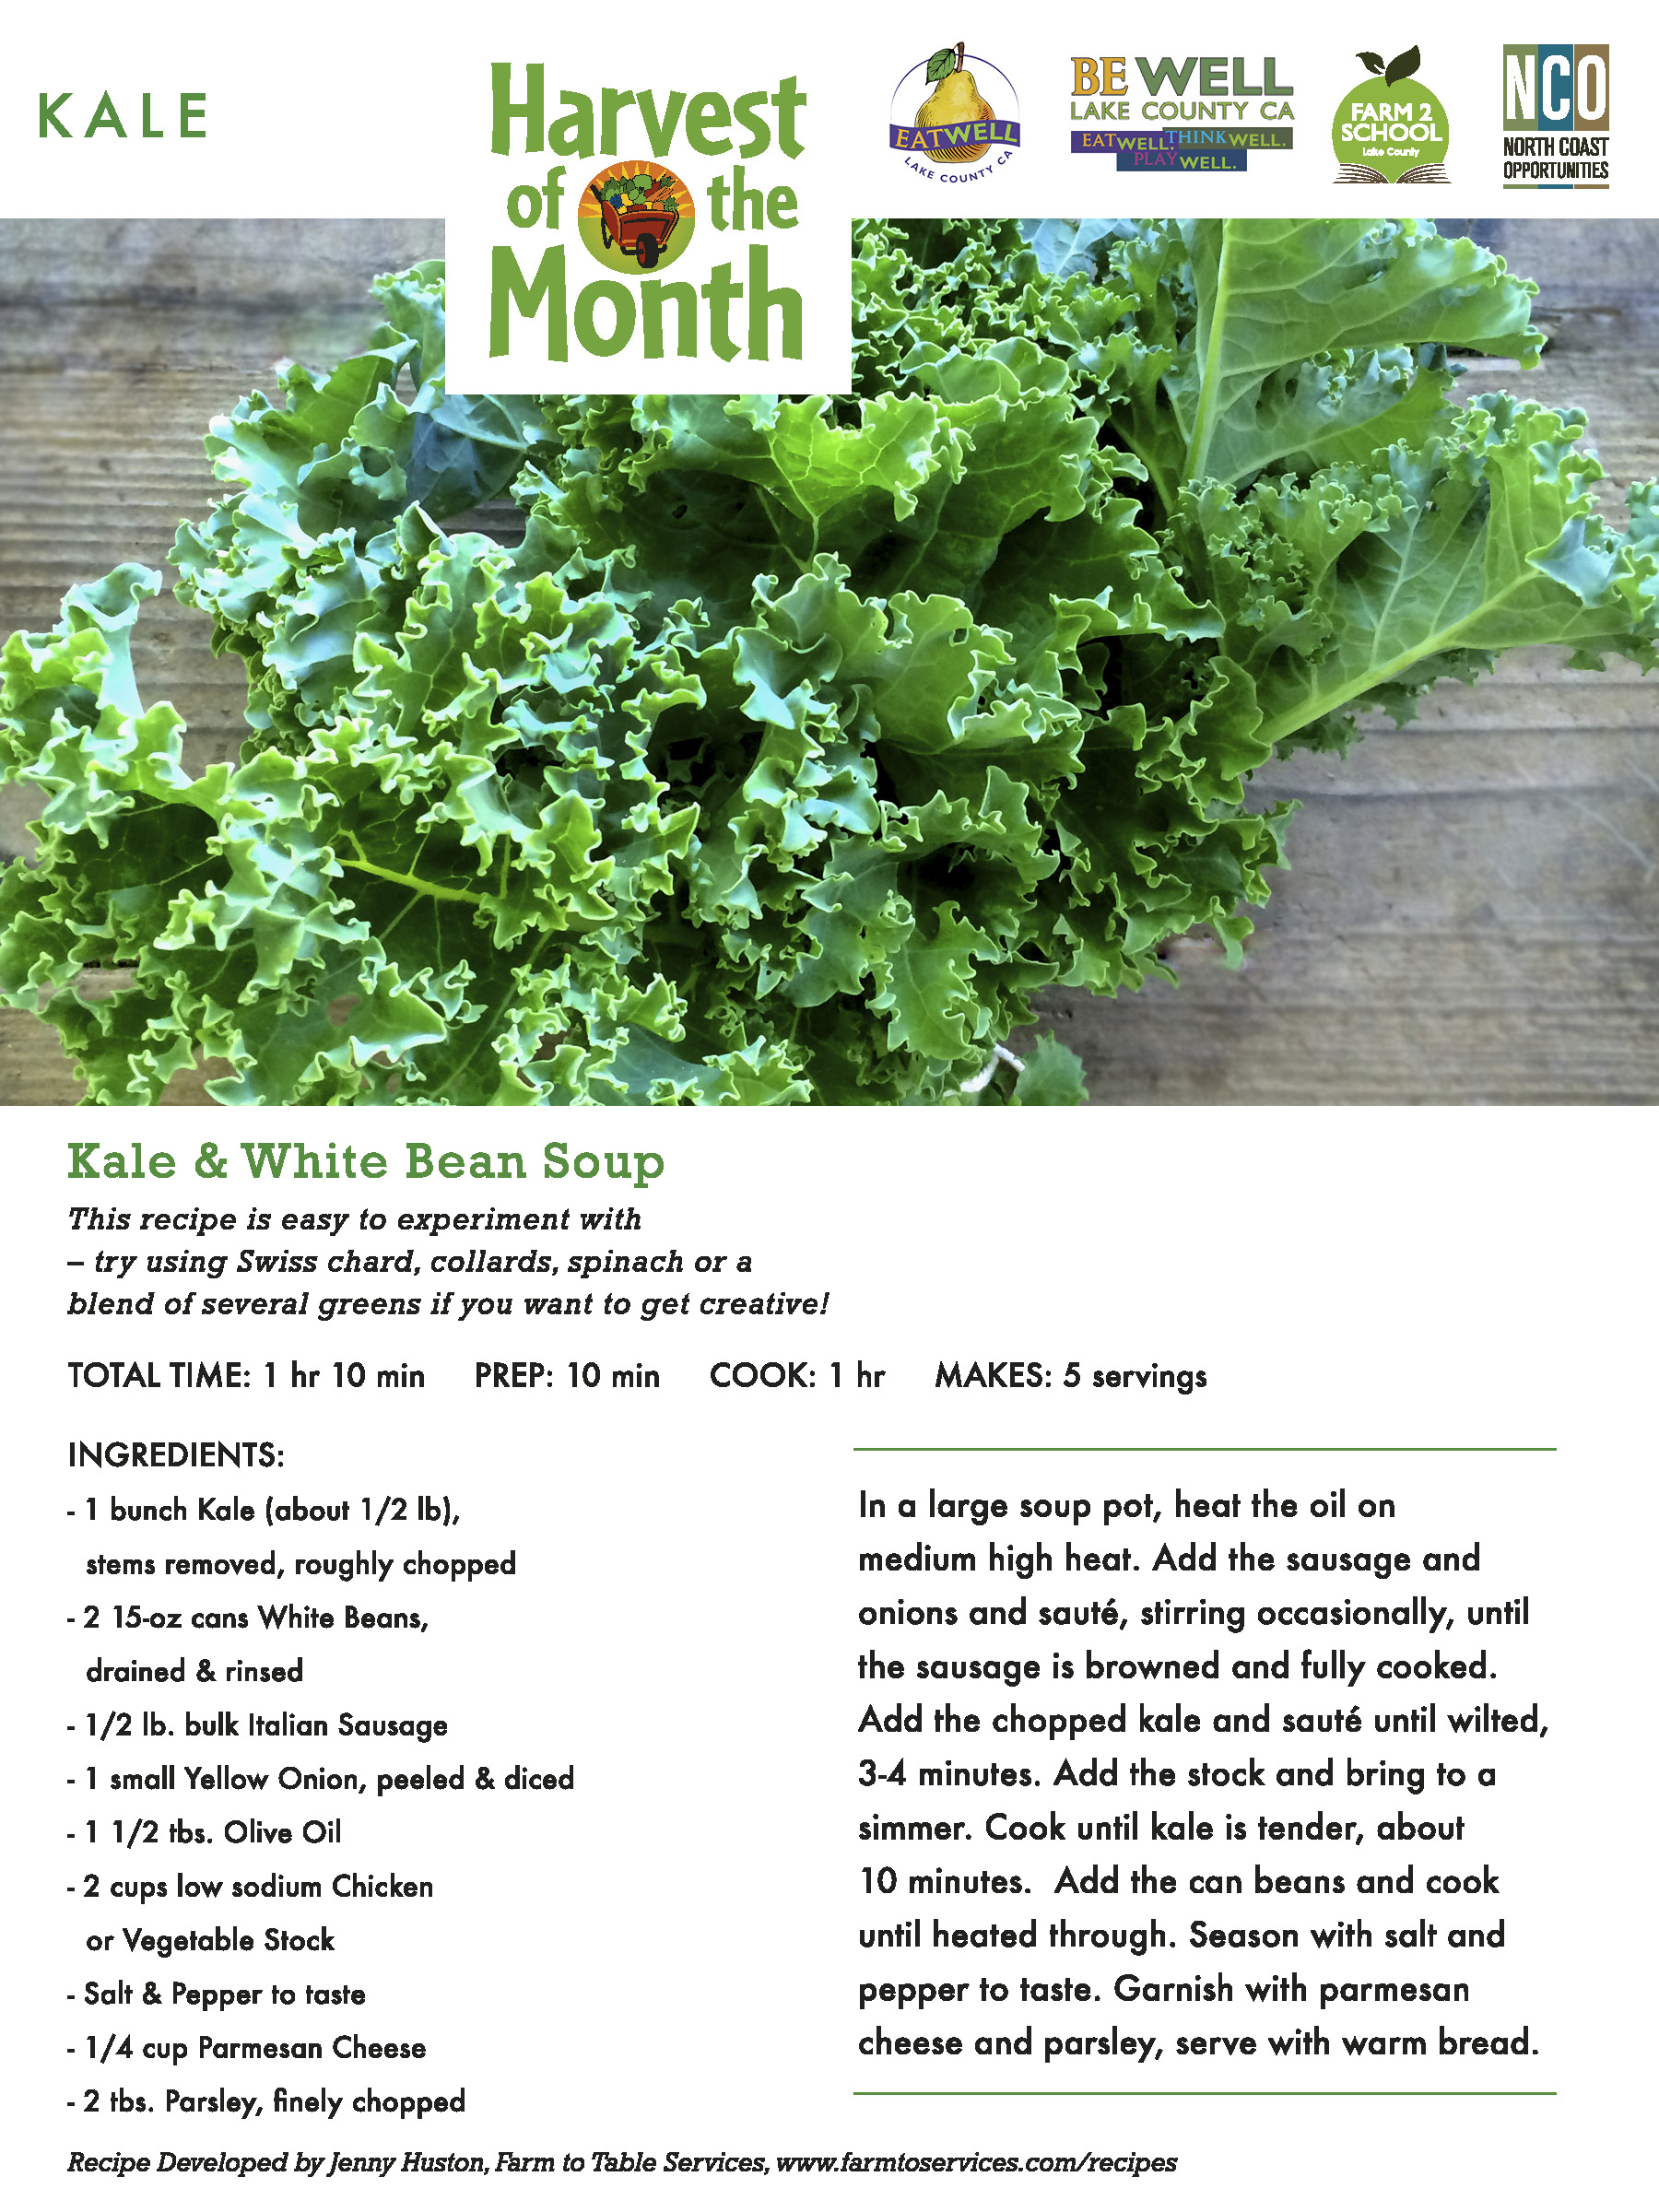 Harvest of the Month Recipes - Lake County Farm to School - NCO Inc ...